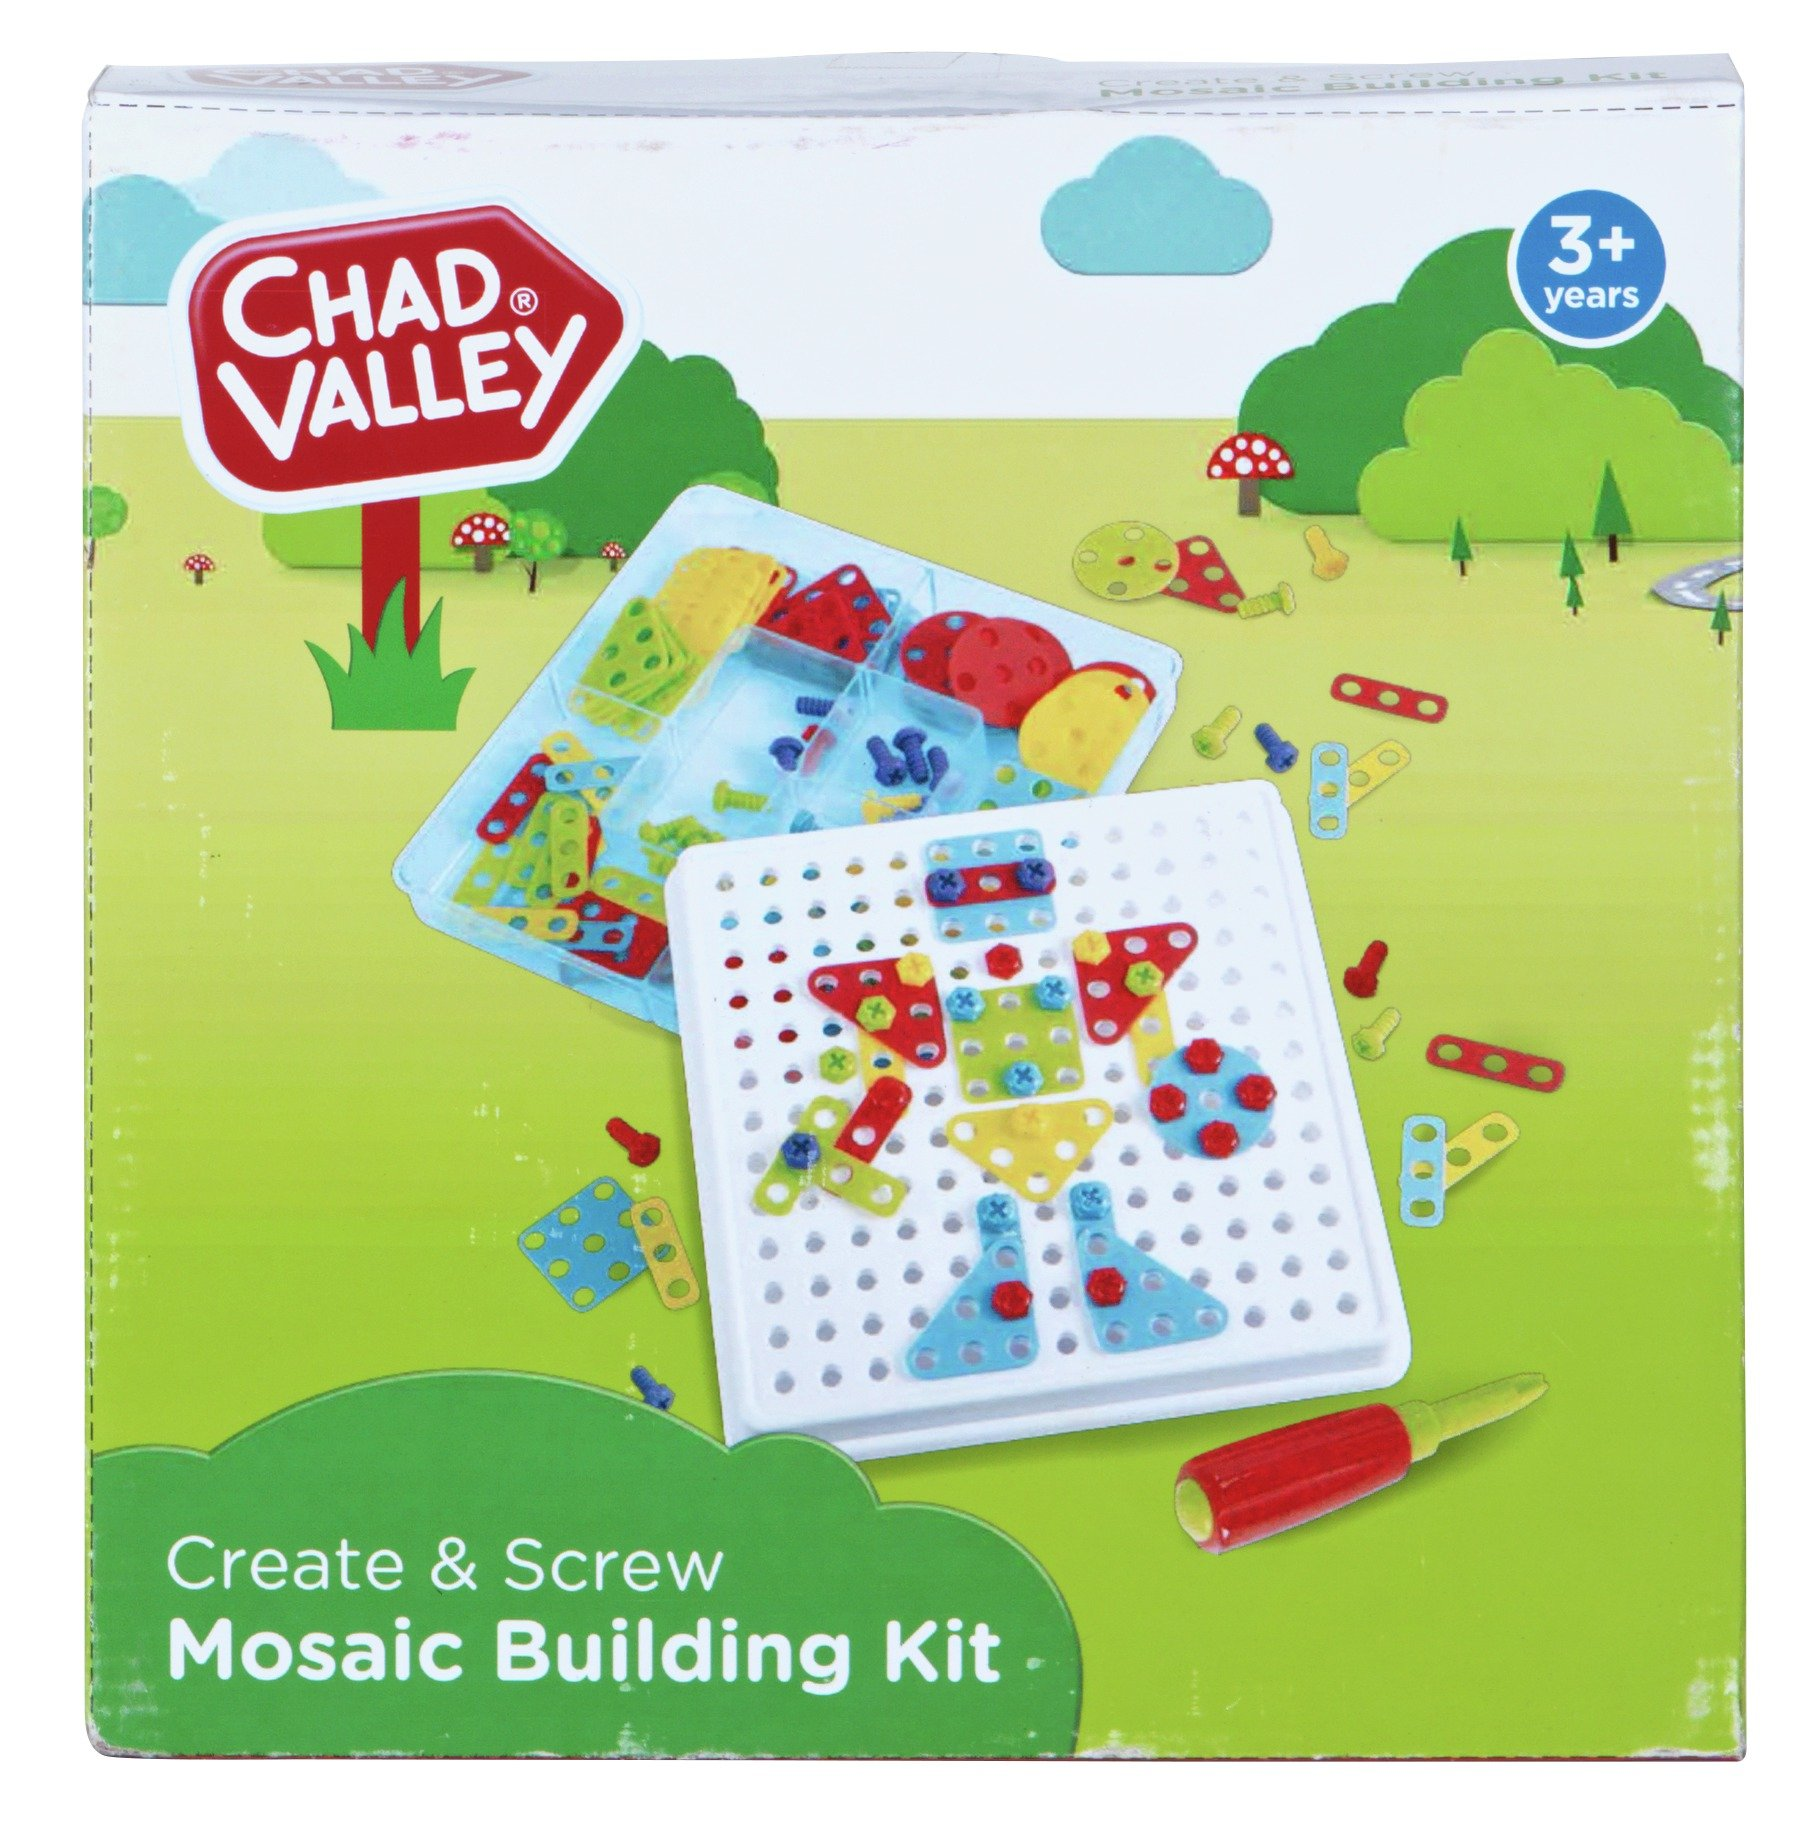 Chad Valley PlaySmart Create & Screw Mosaic Building Kit